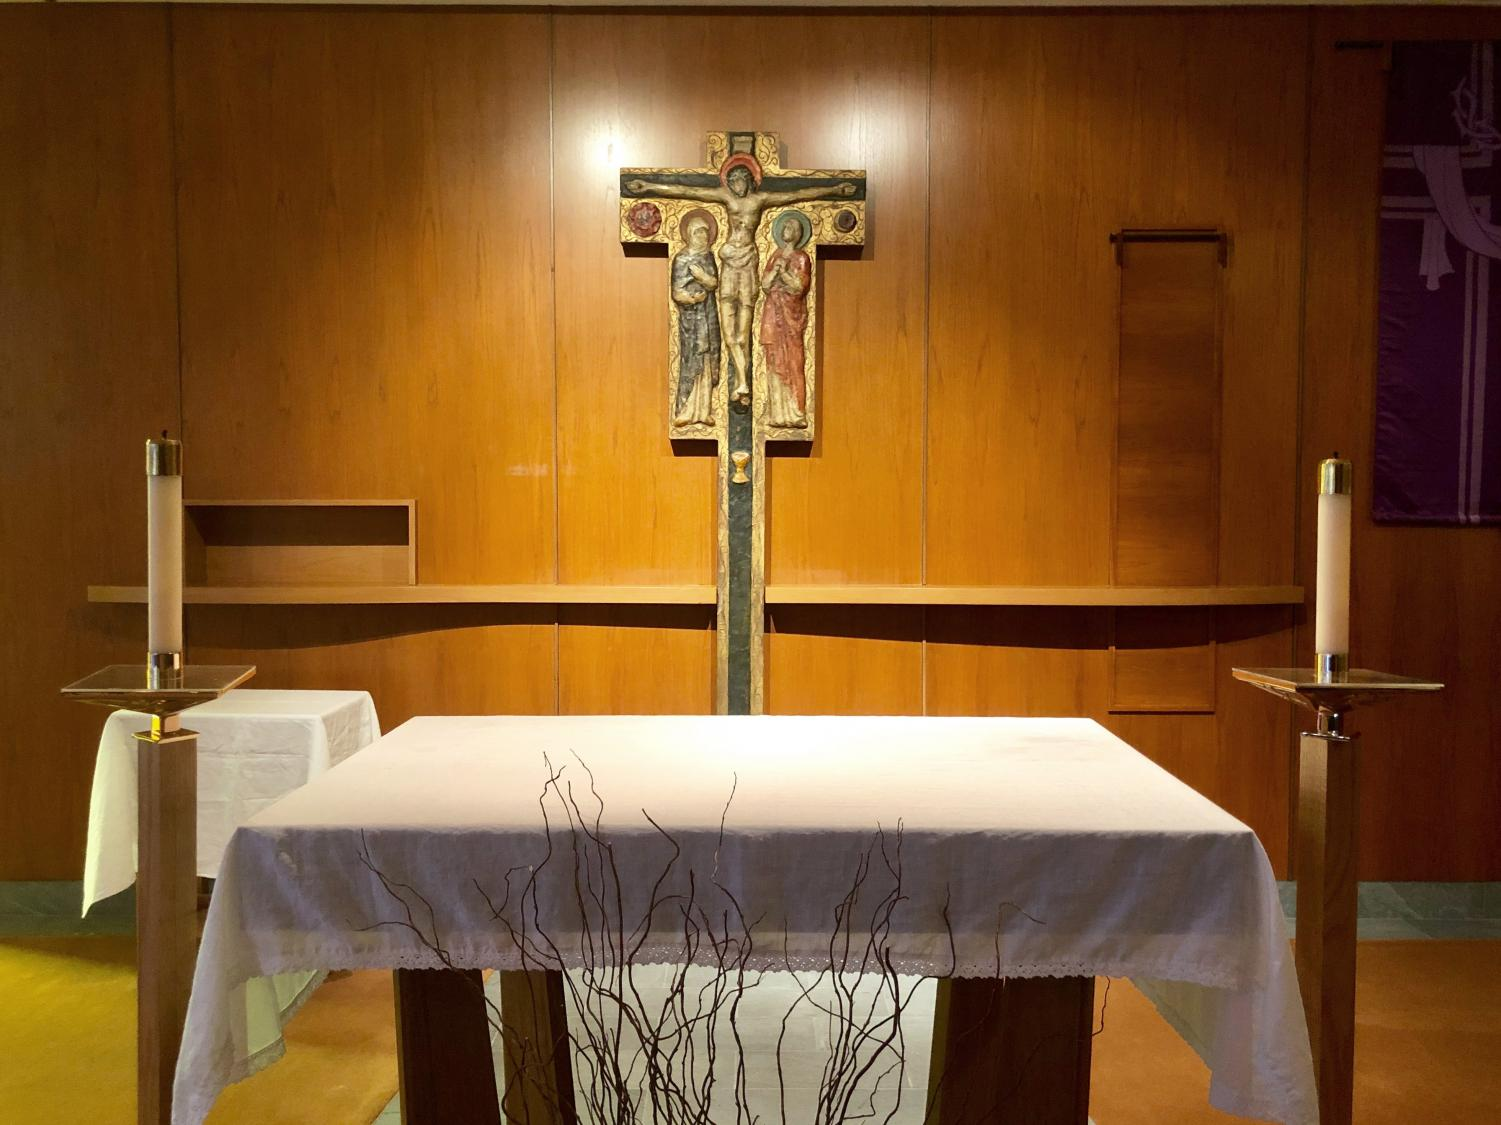 The altar in the chapel on the second floor of Lowenstein. Campus Ministry's office, the heart of spiritual development at Fordham at Lincoln Center, is also located on the second floor.